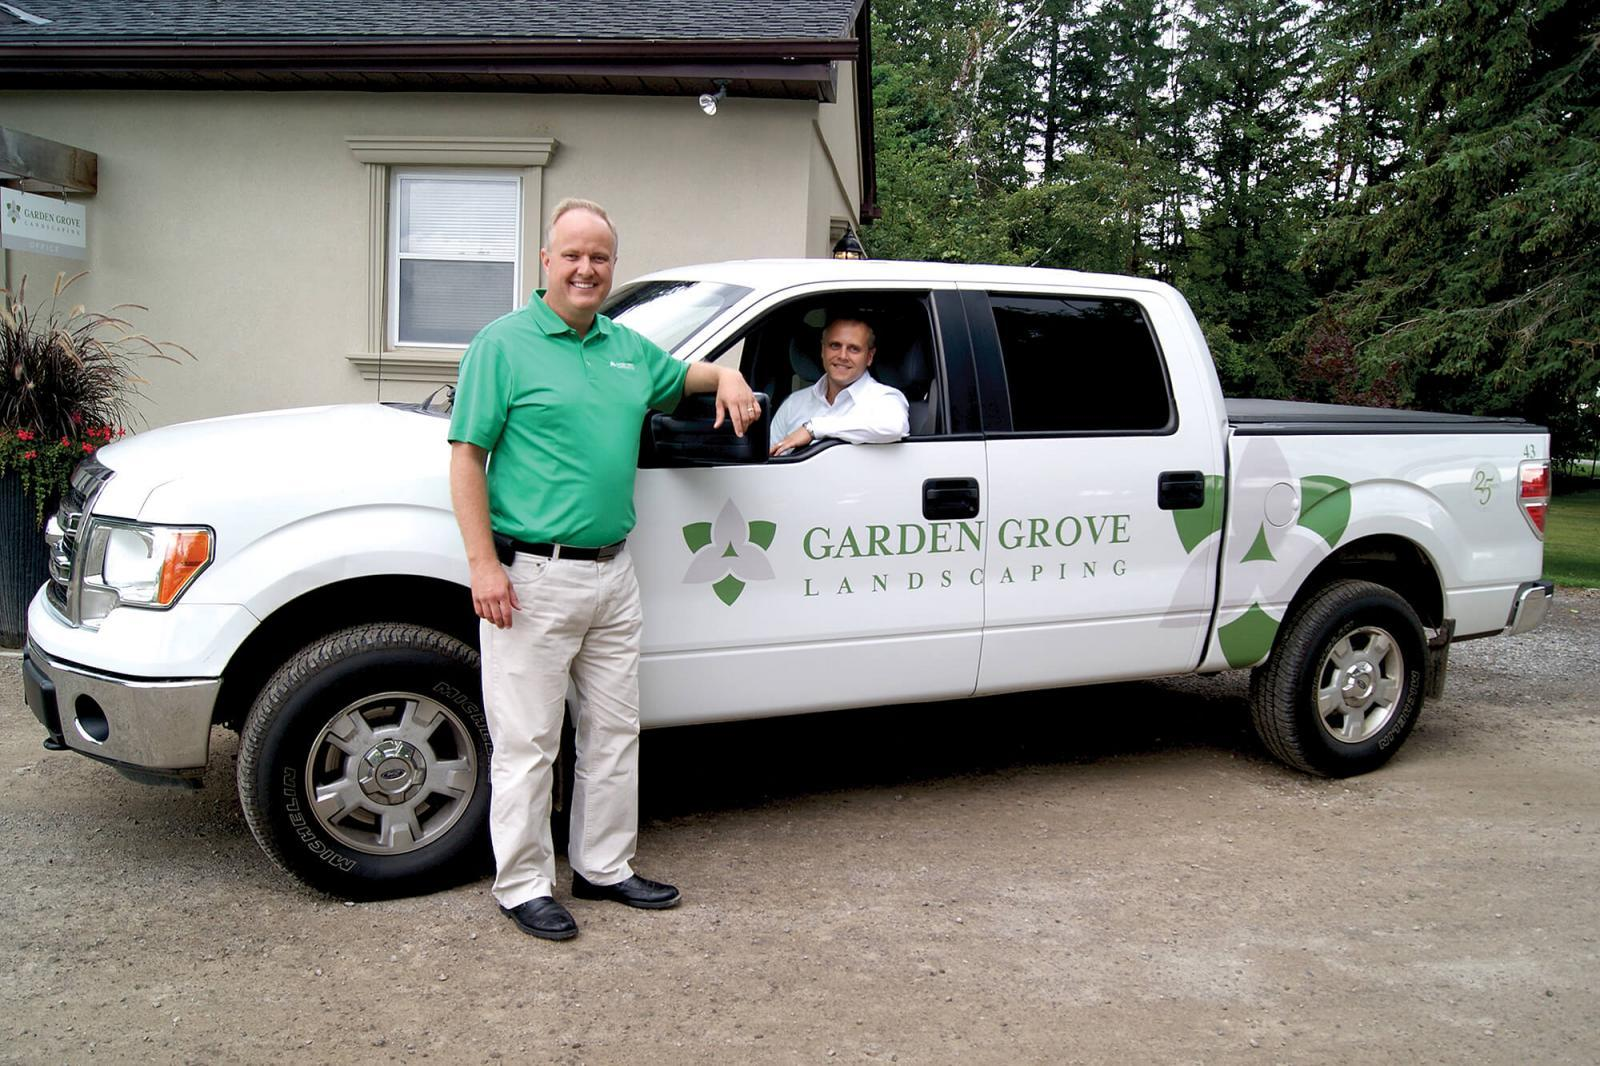 David Lammers, standing, and his brother Paul are celebrating 25 years of success operating their business, Garden Grove Landscaping in Waterdown.